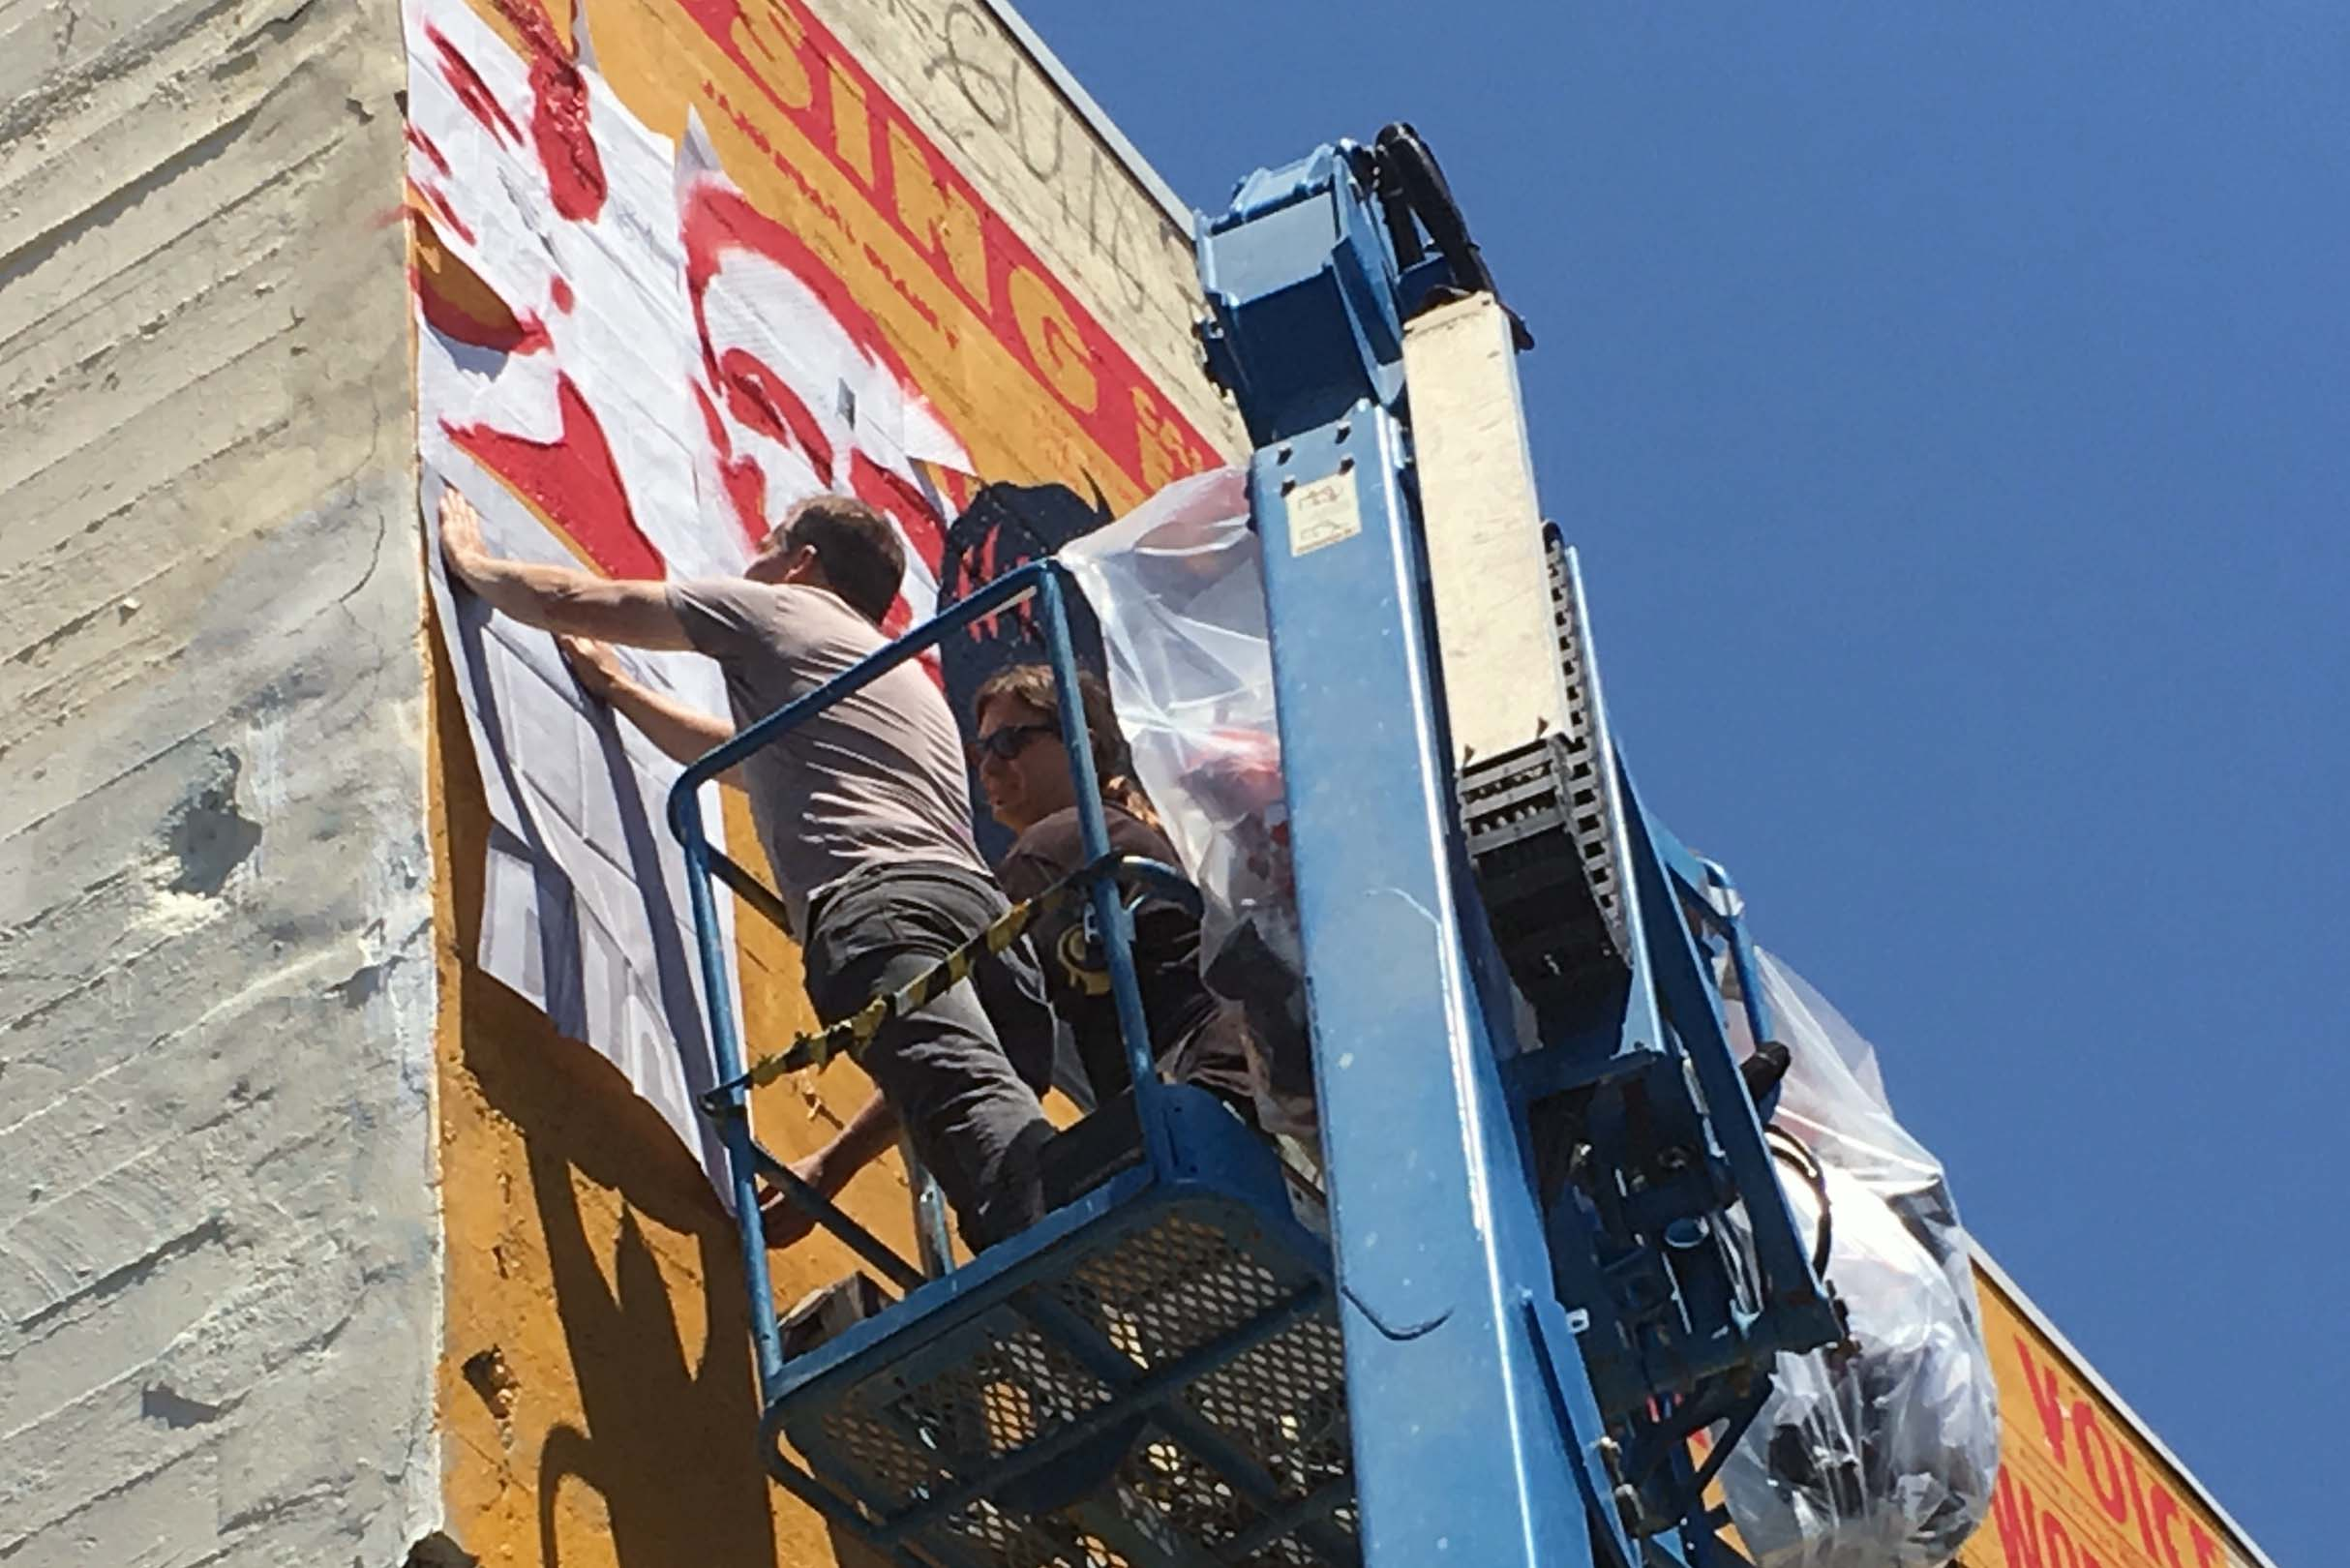 Artist Shepard Fairey Brings Social Justice Mural to SF Mission